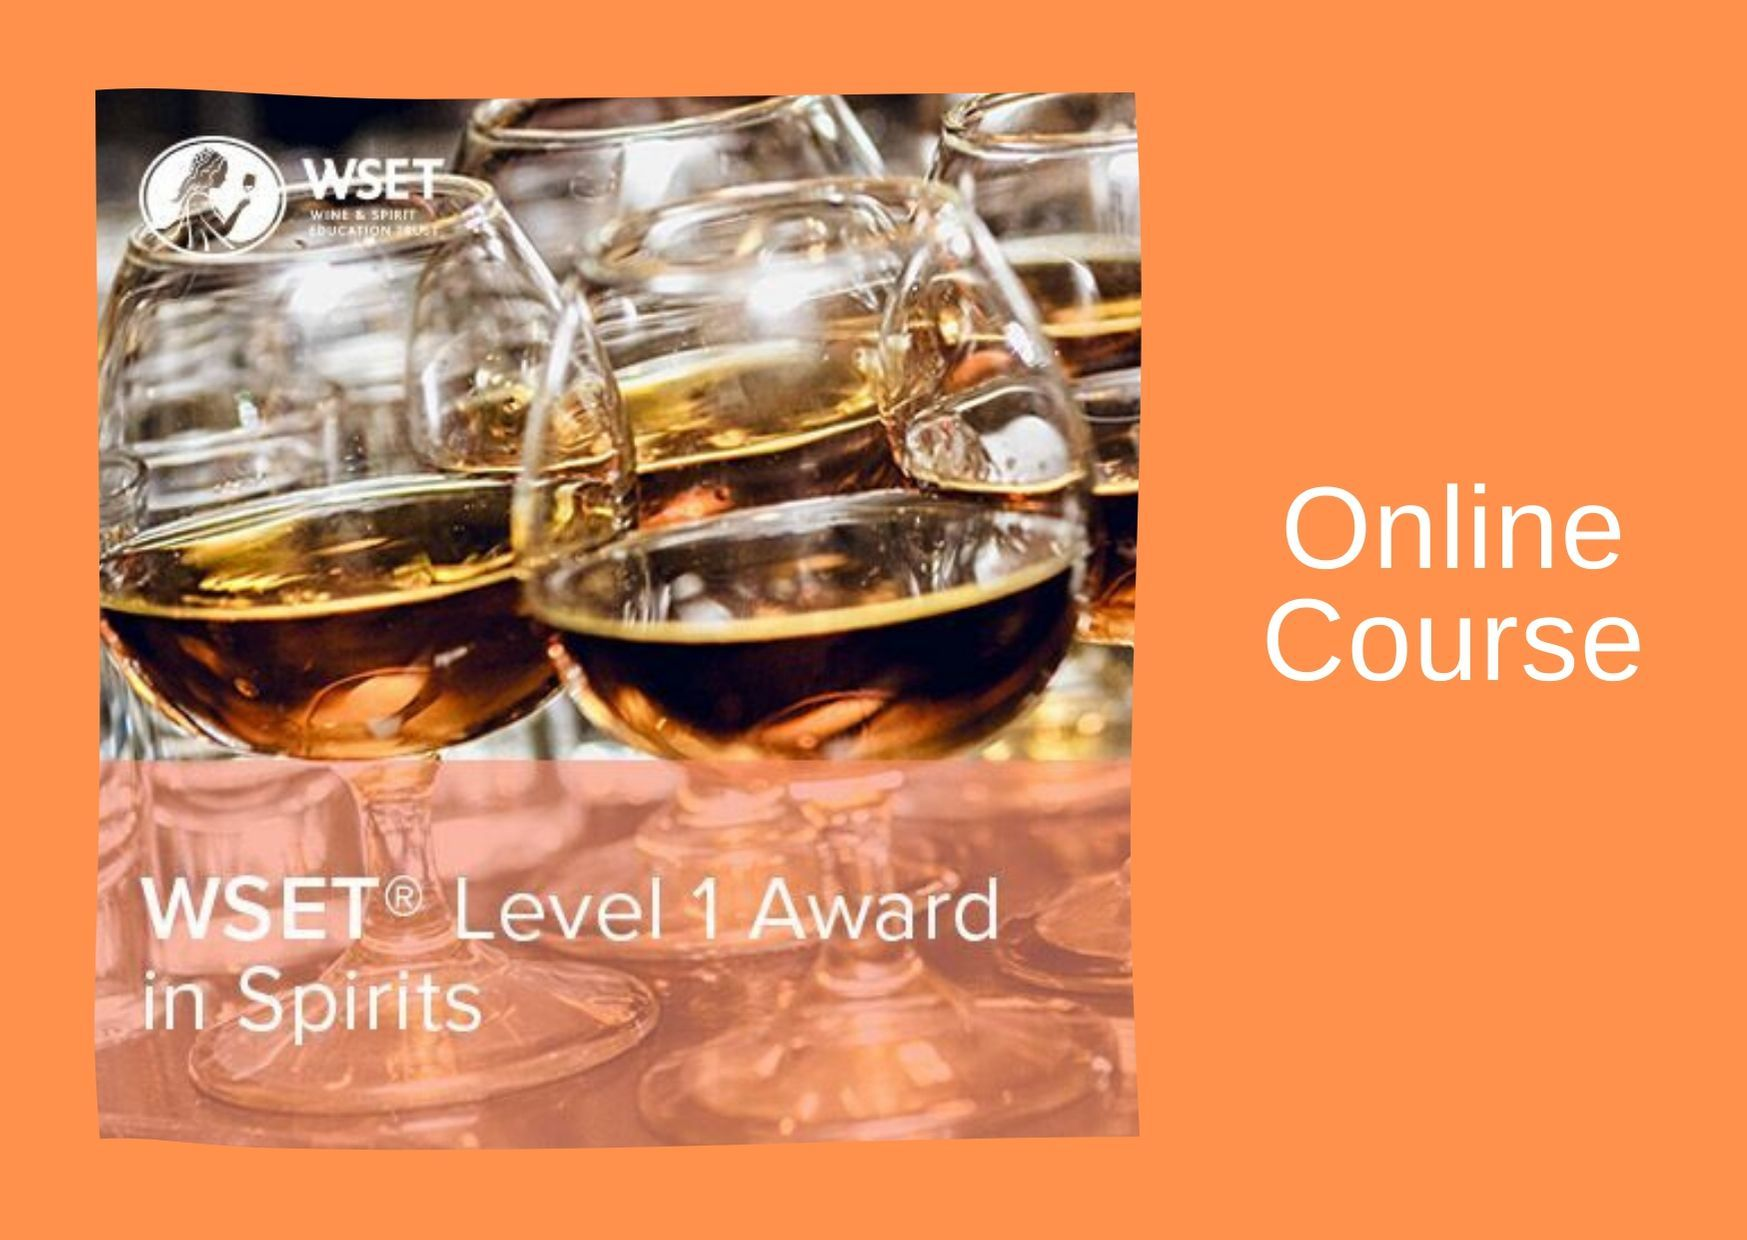 WSET Level 1 Award in Spirits & Exam - online